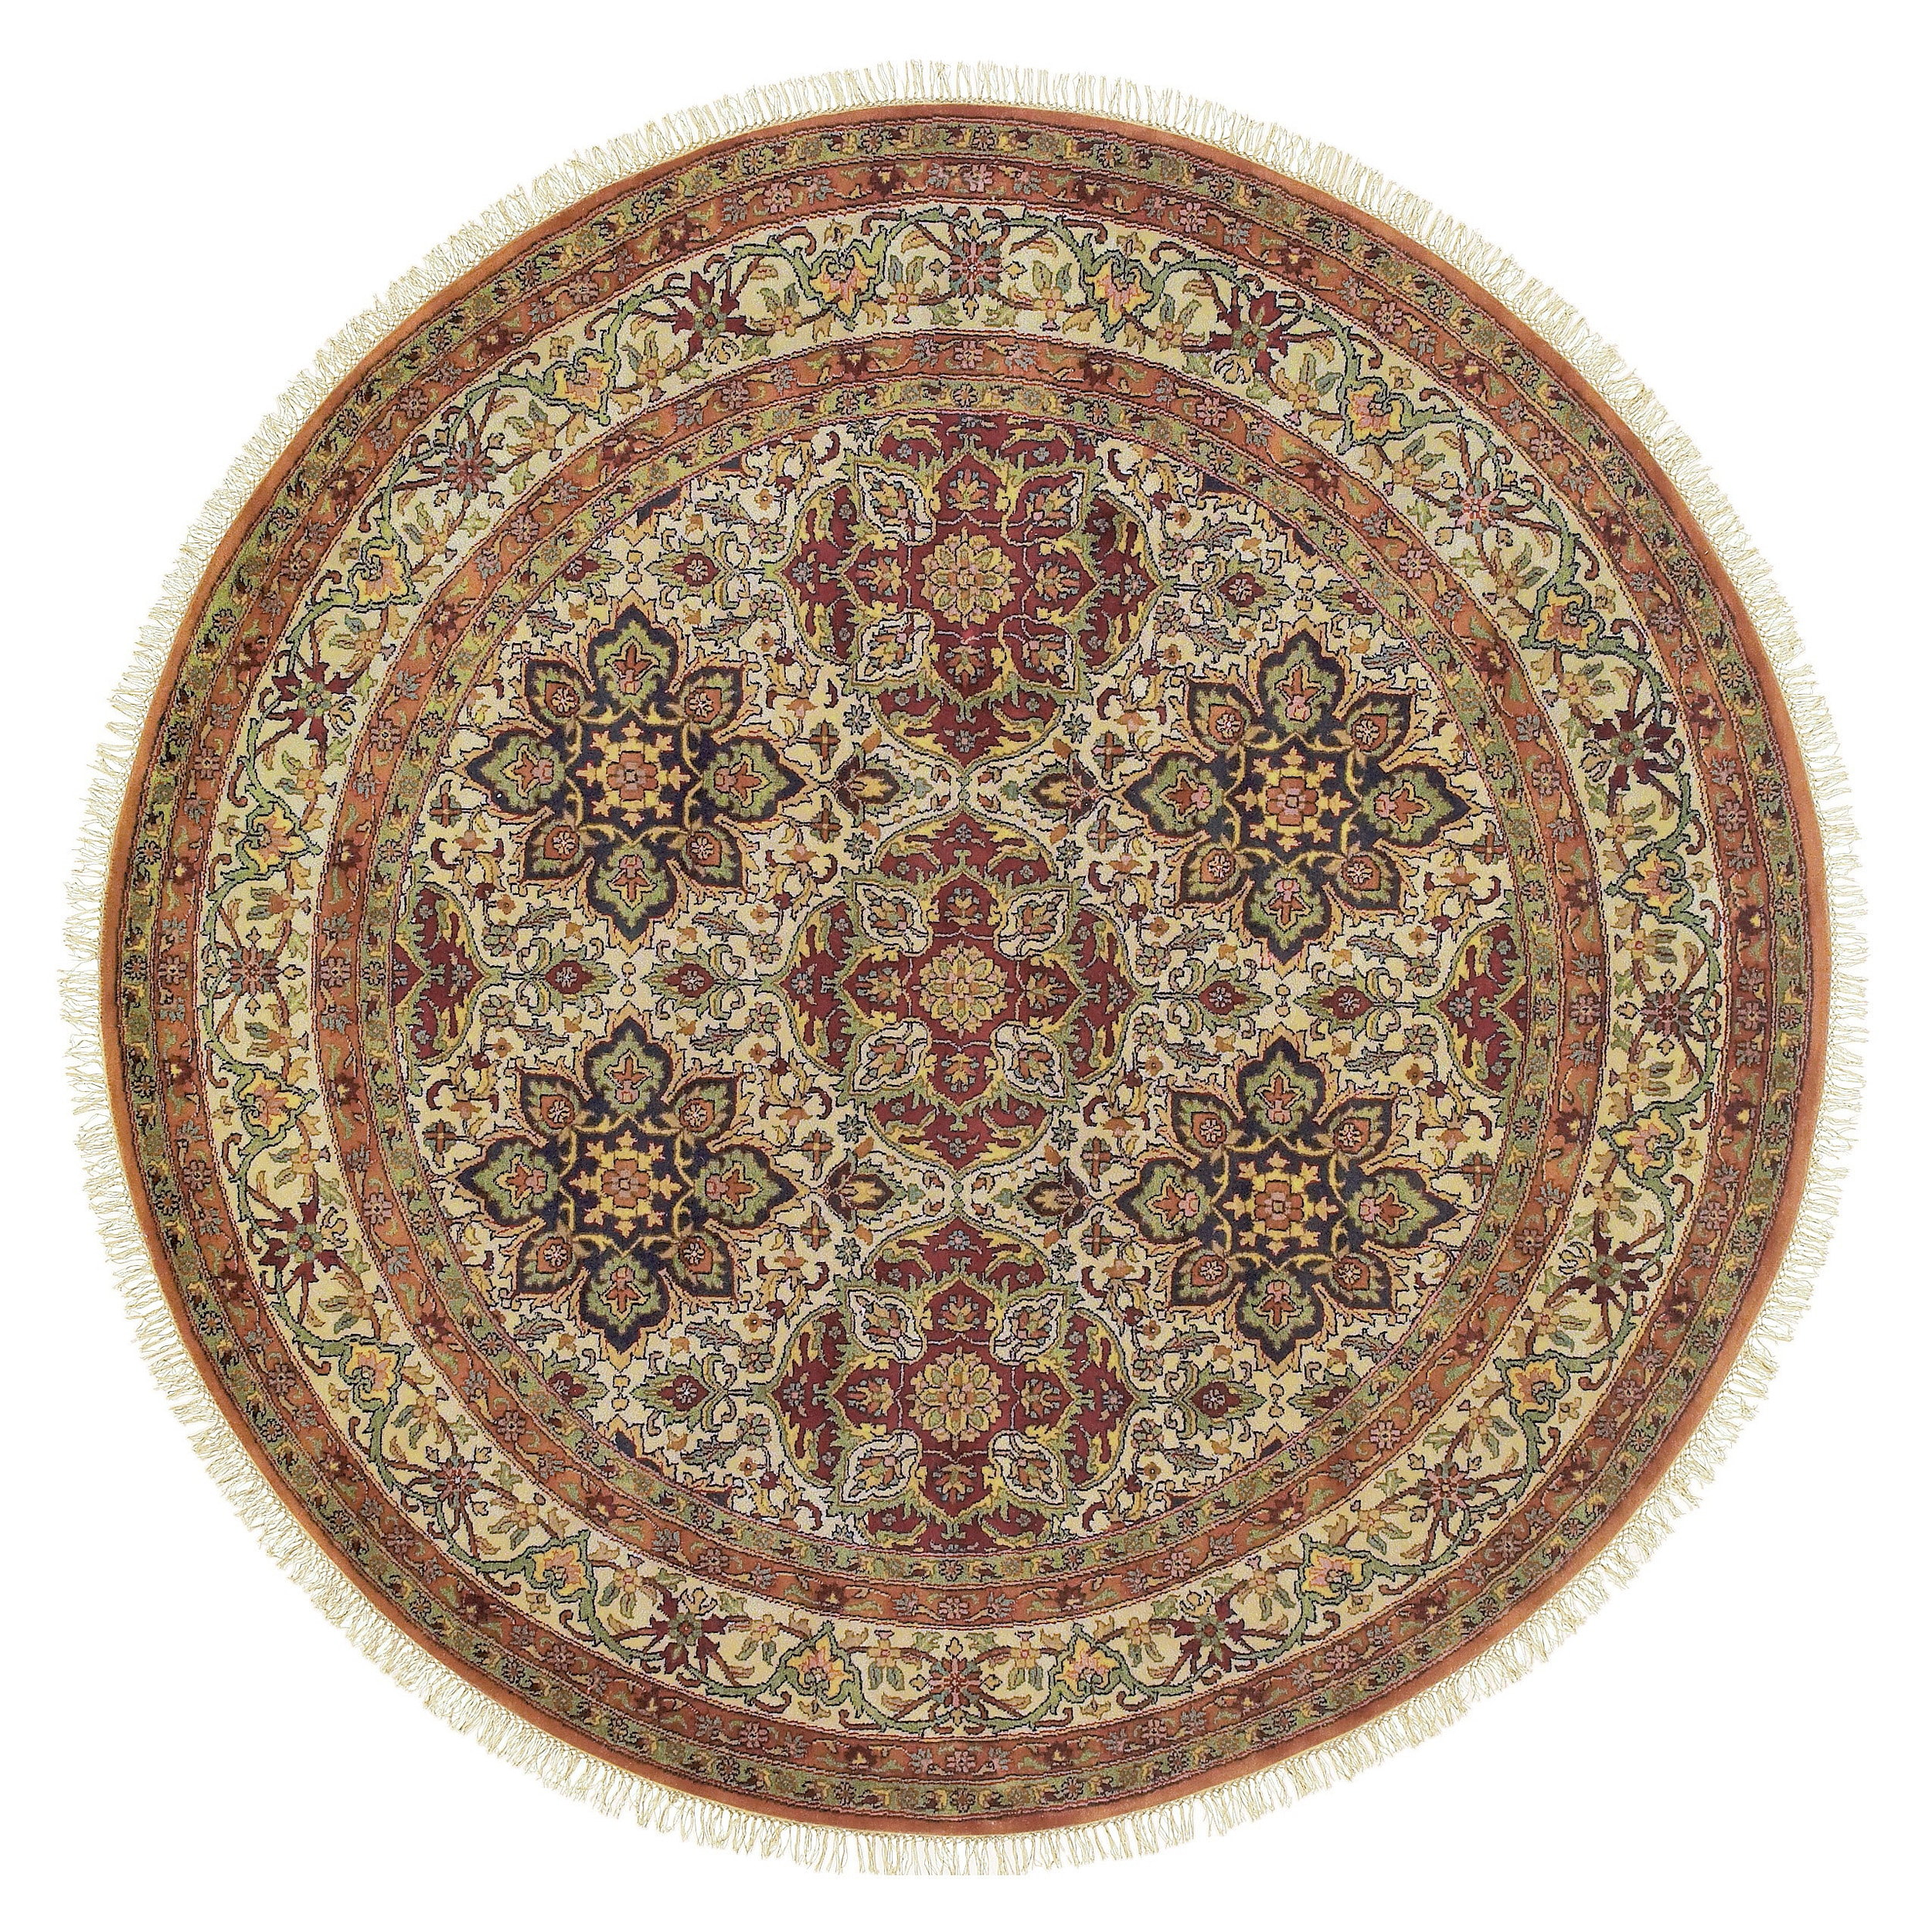 Hand-Knotted Multicolored Burgundy Borough Semi-Worsted Traditional New Zealand Wool Rug (8' Round)